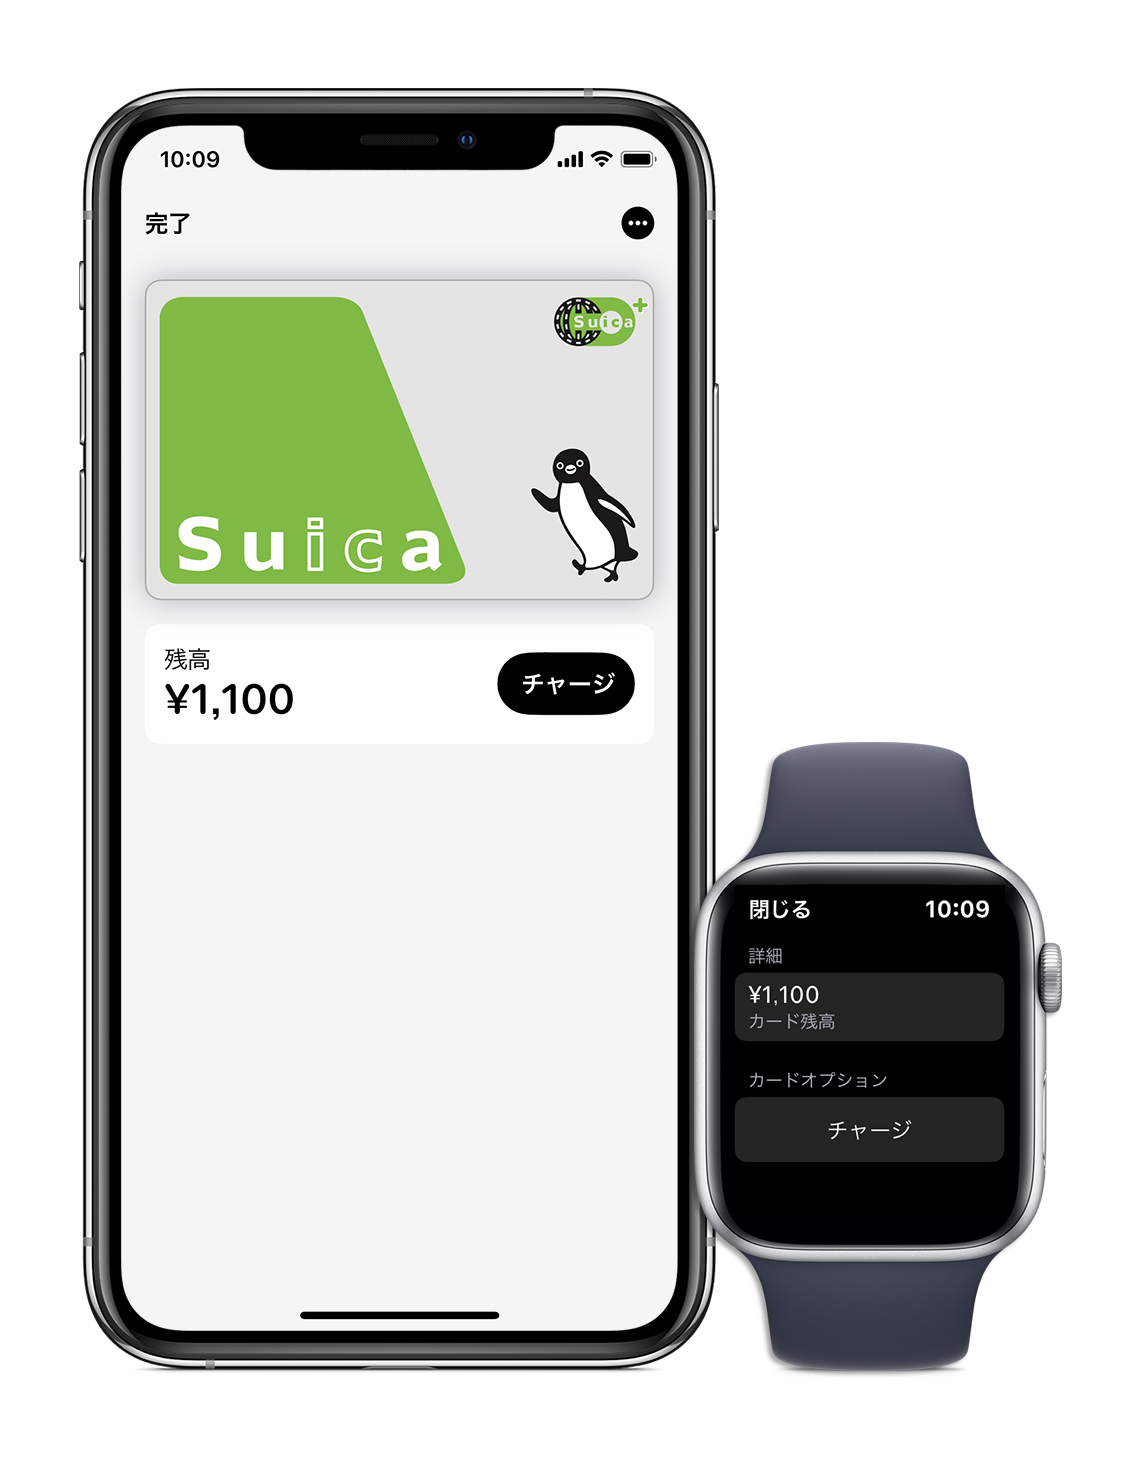 Using Suica on iPhone or Apple Watch in Japan - Apple Support